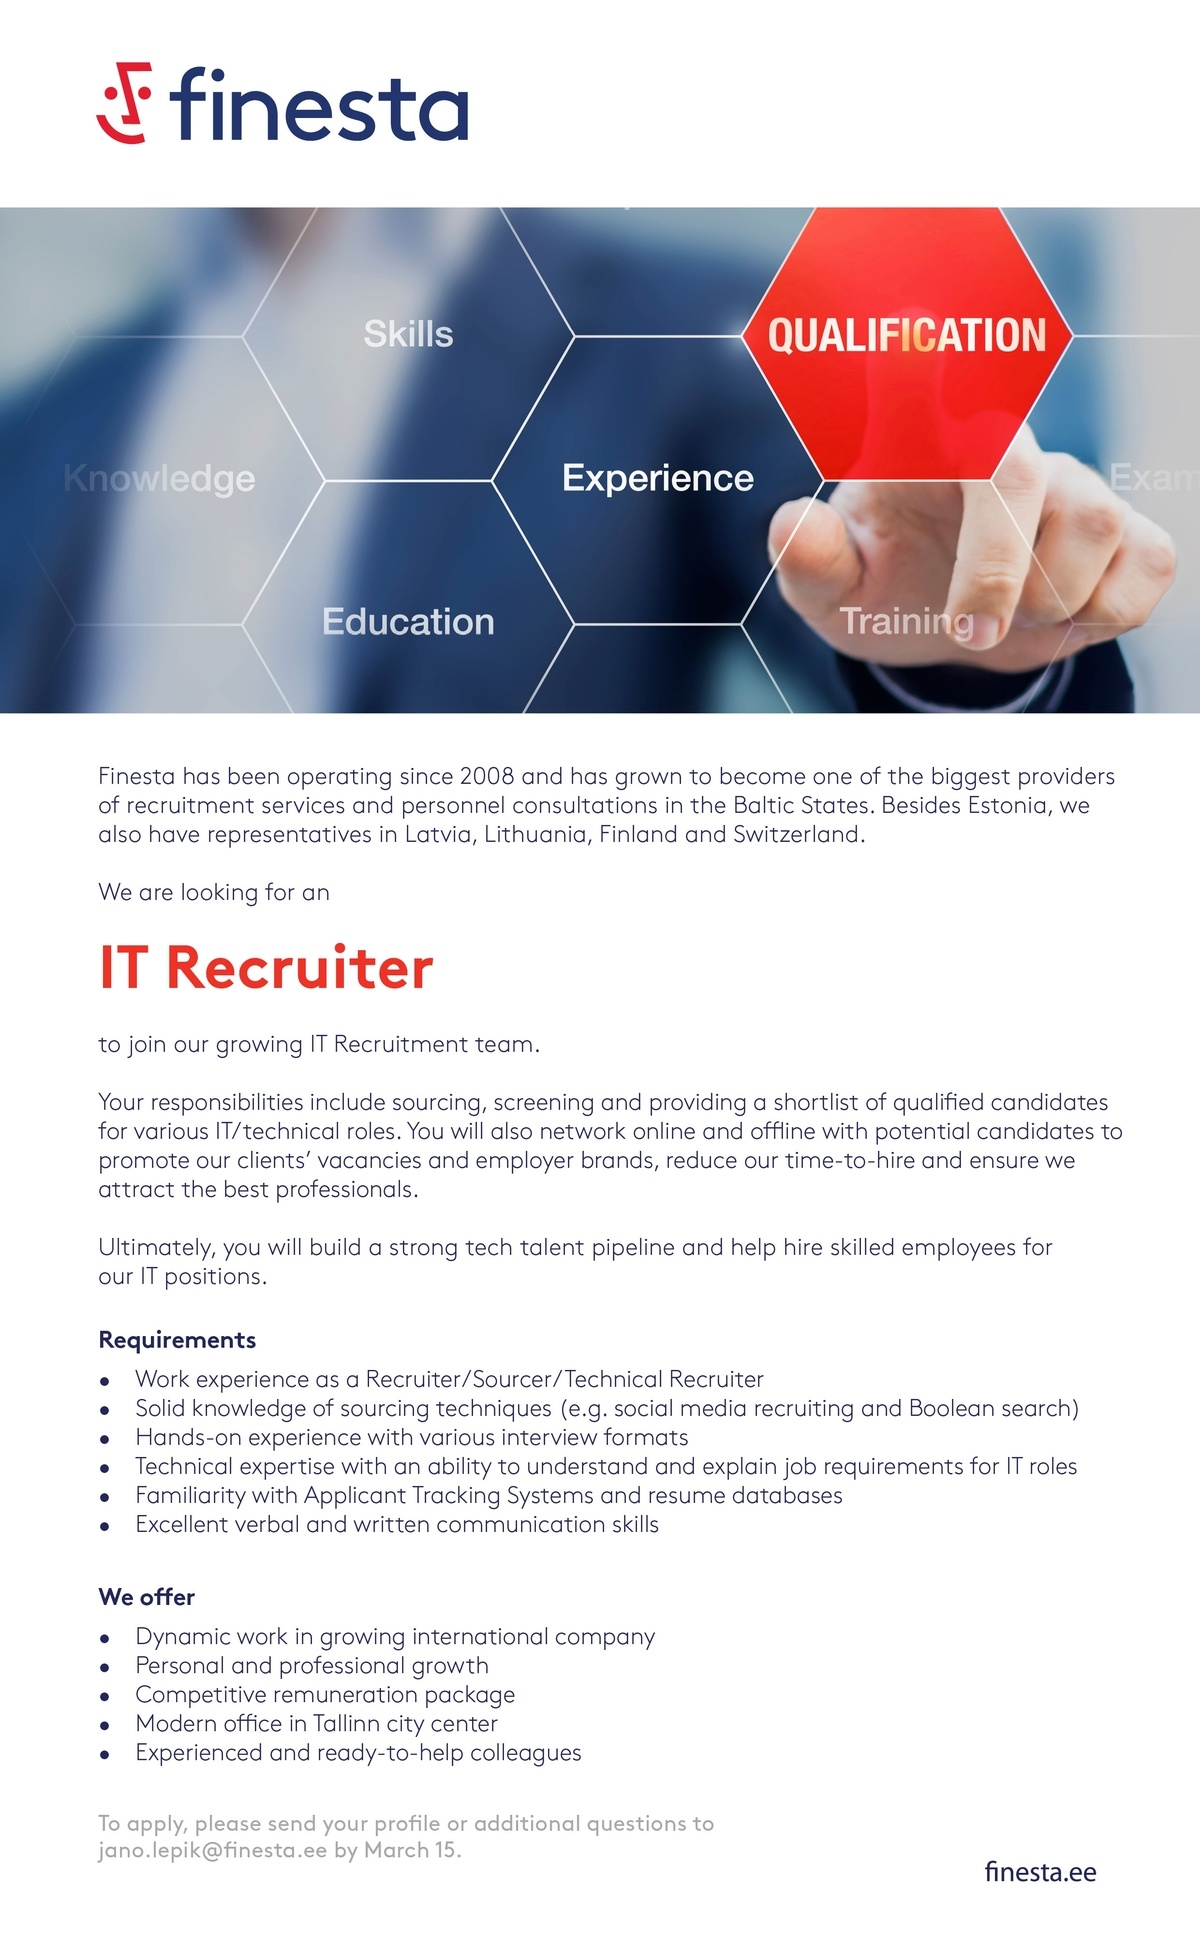 CV Market´s client IT Recruiter